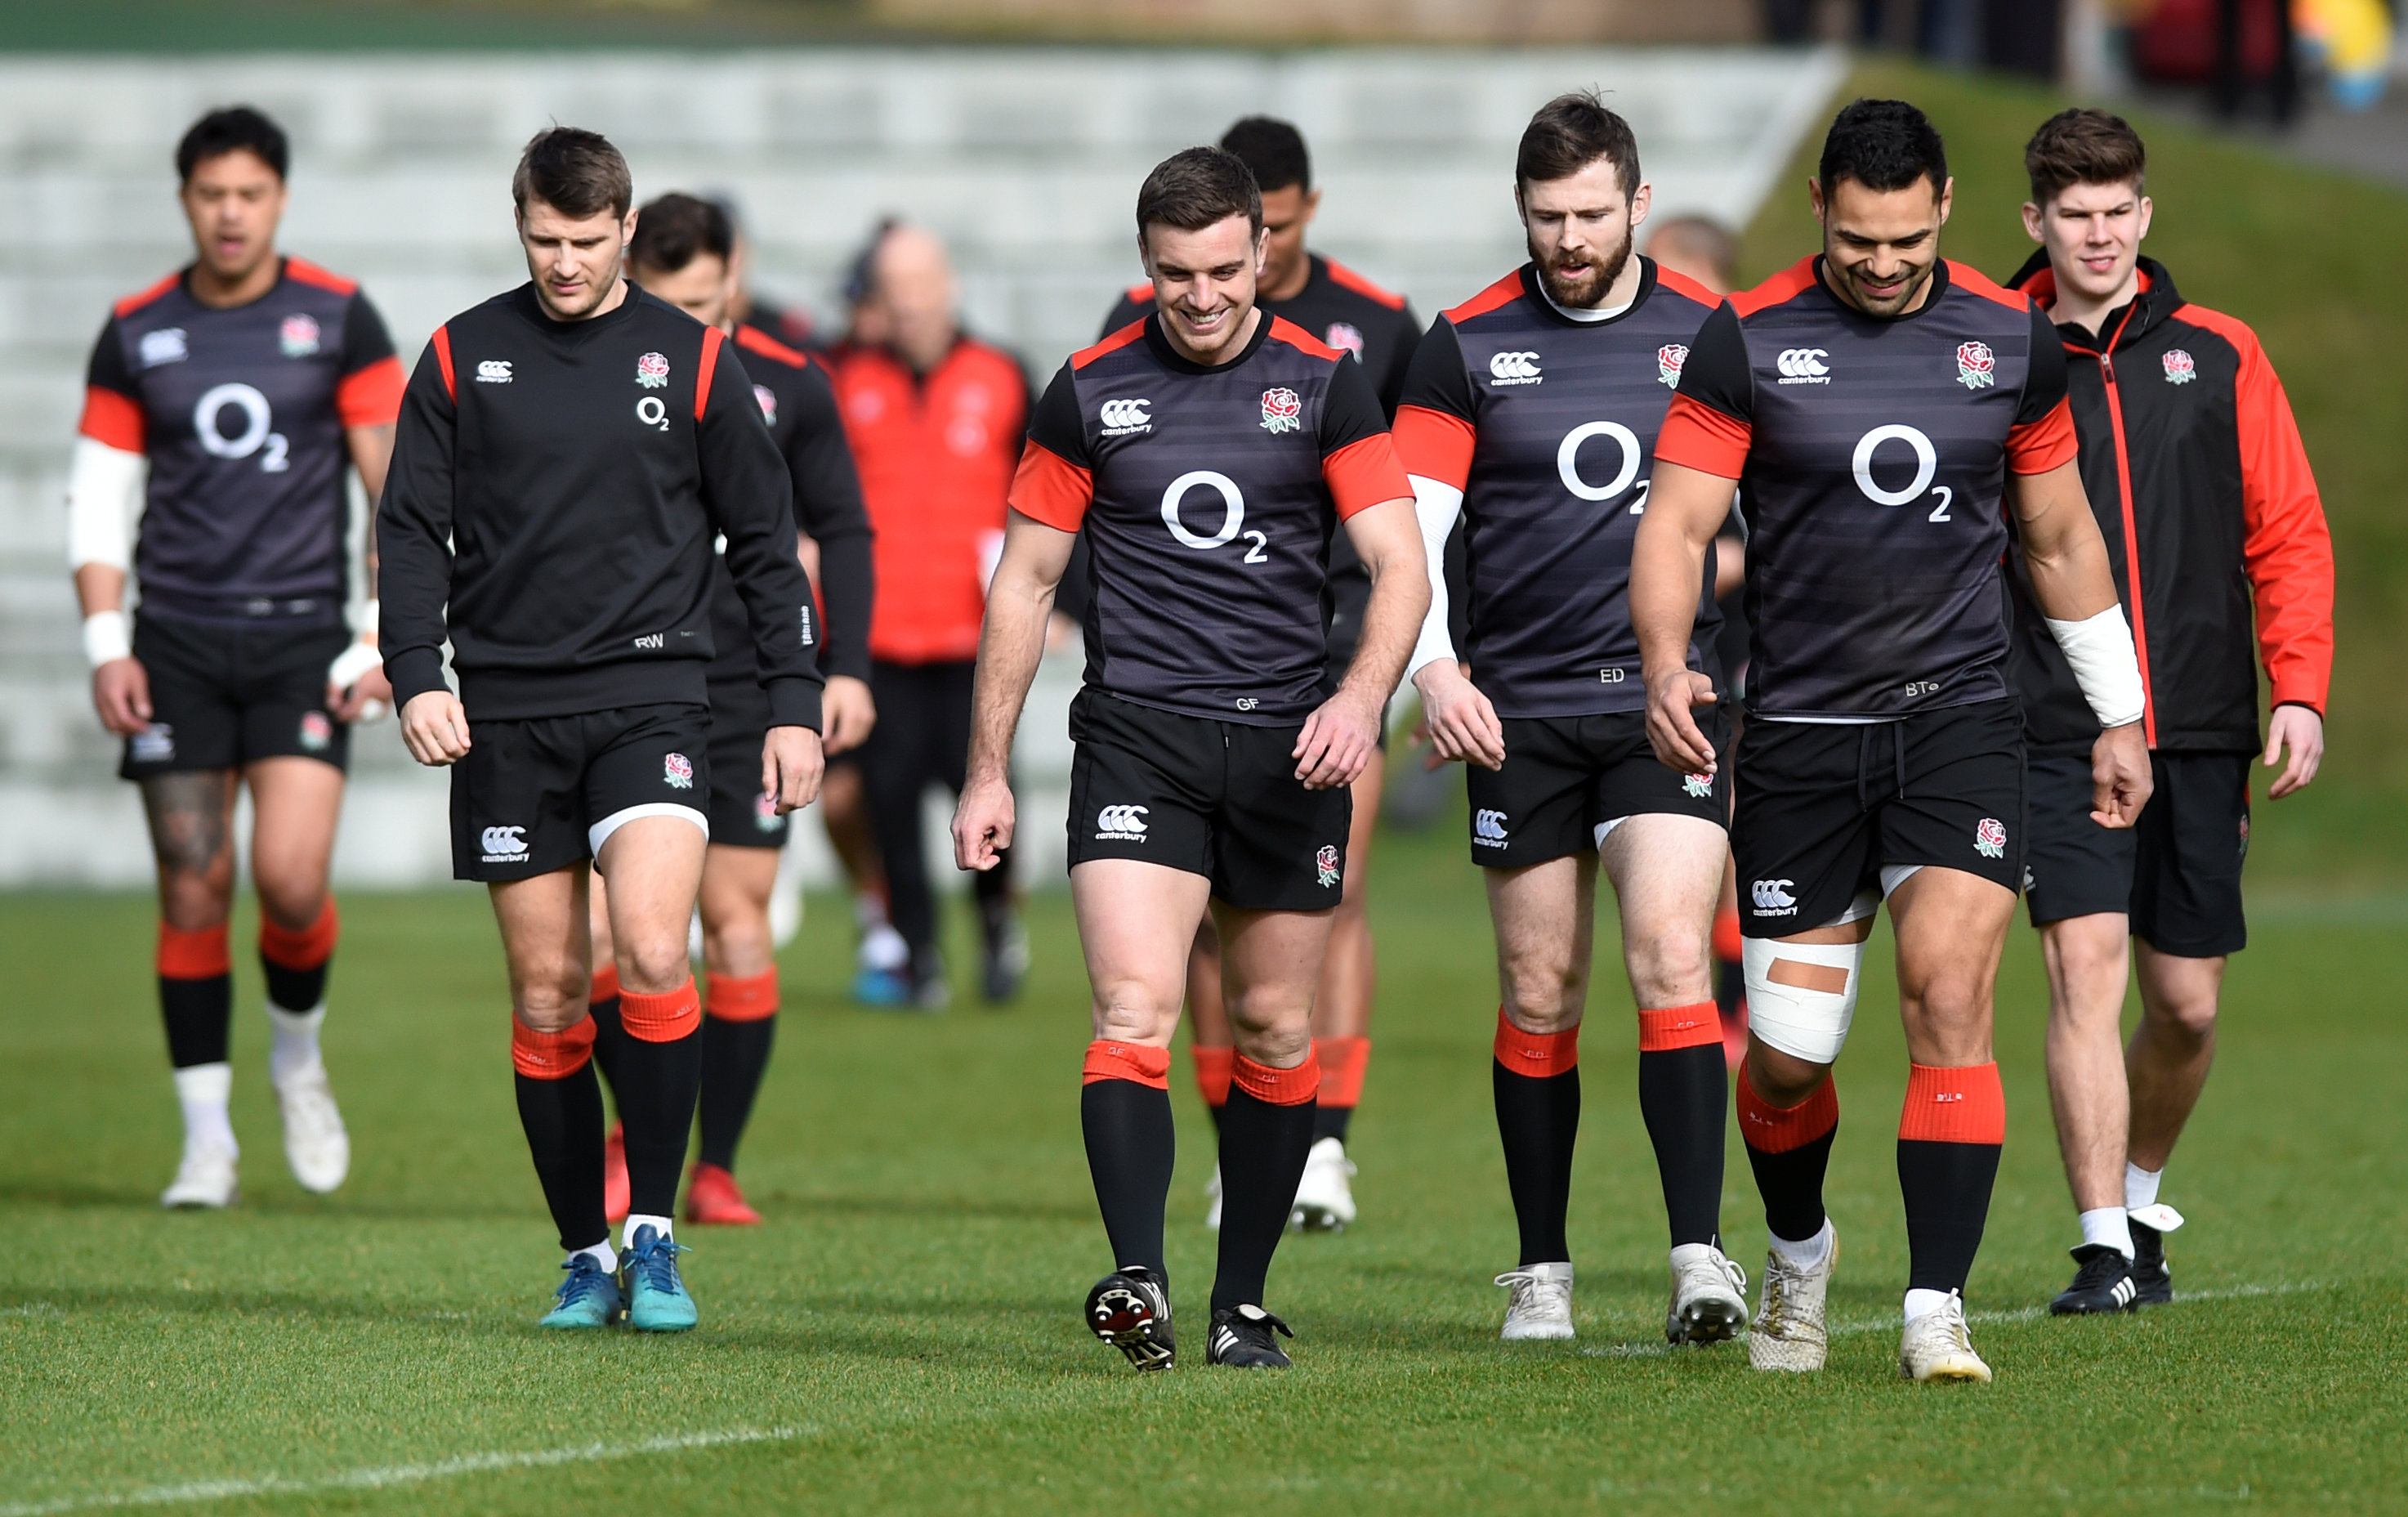 Rugby: England's Hughes, Lawes out for three months due to injuries